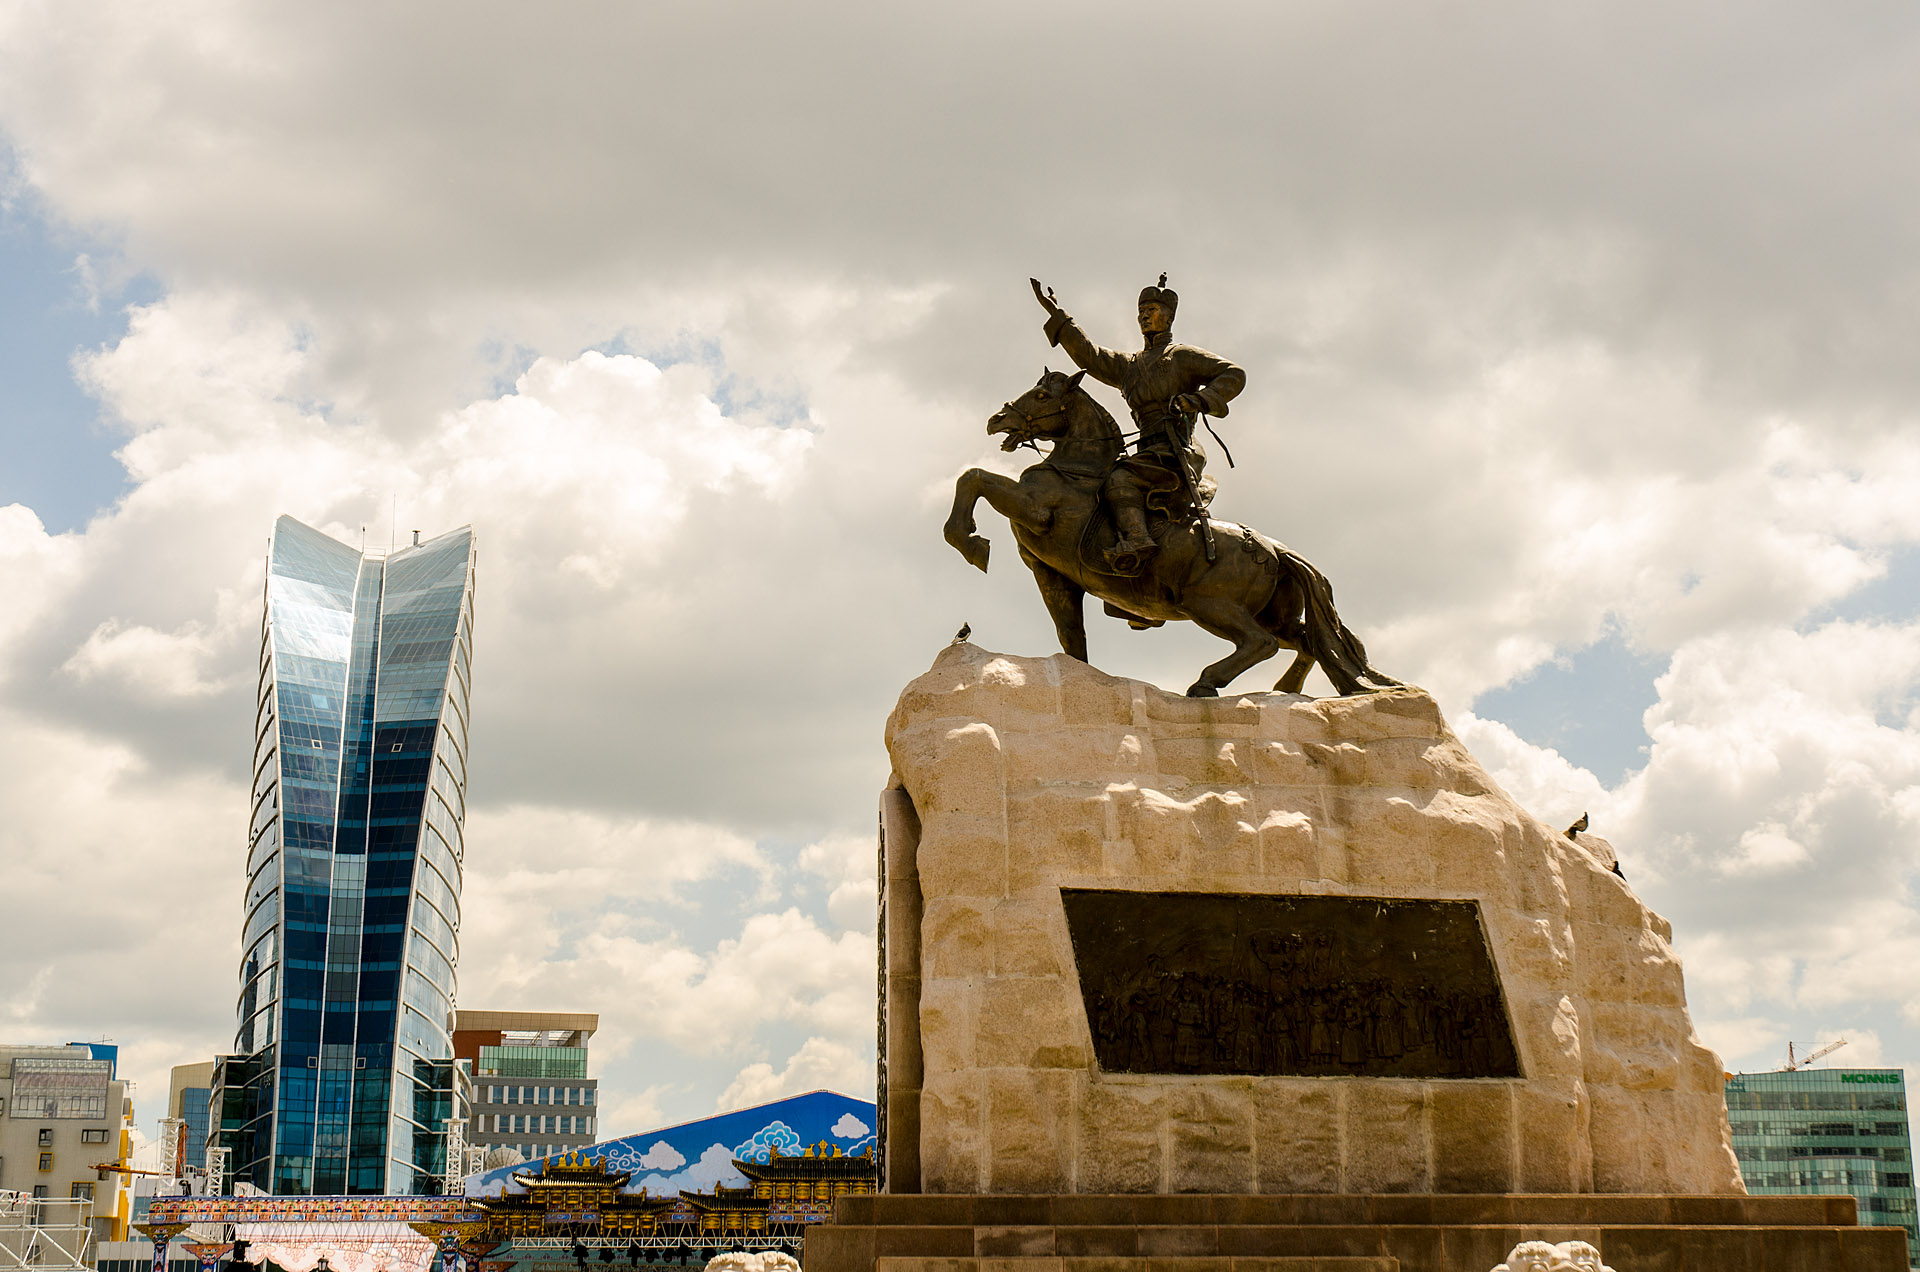 Chinggis Khan Square